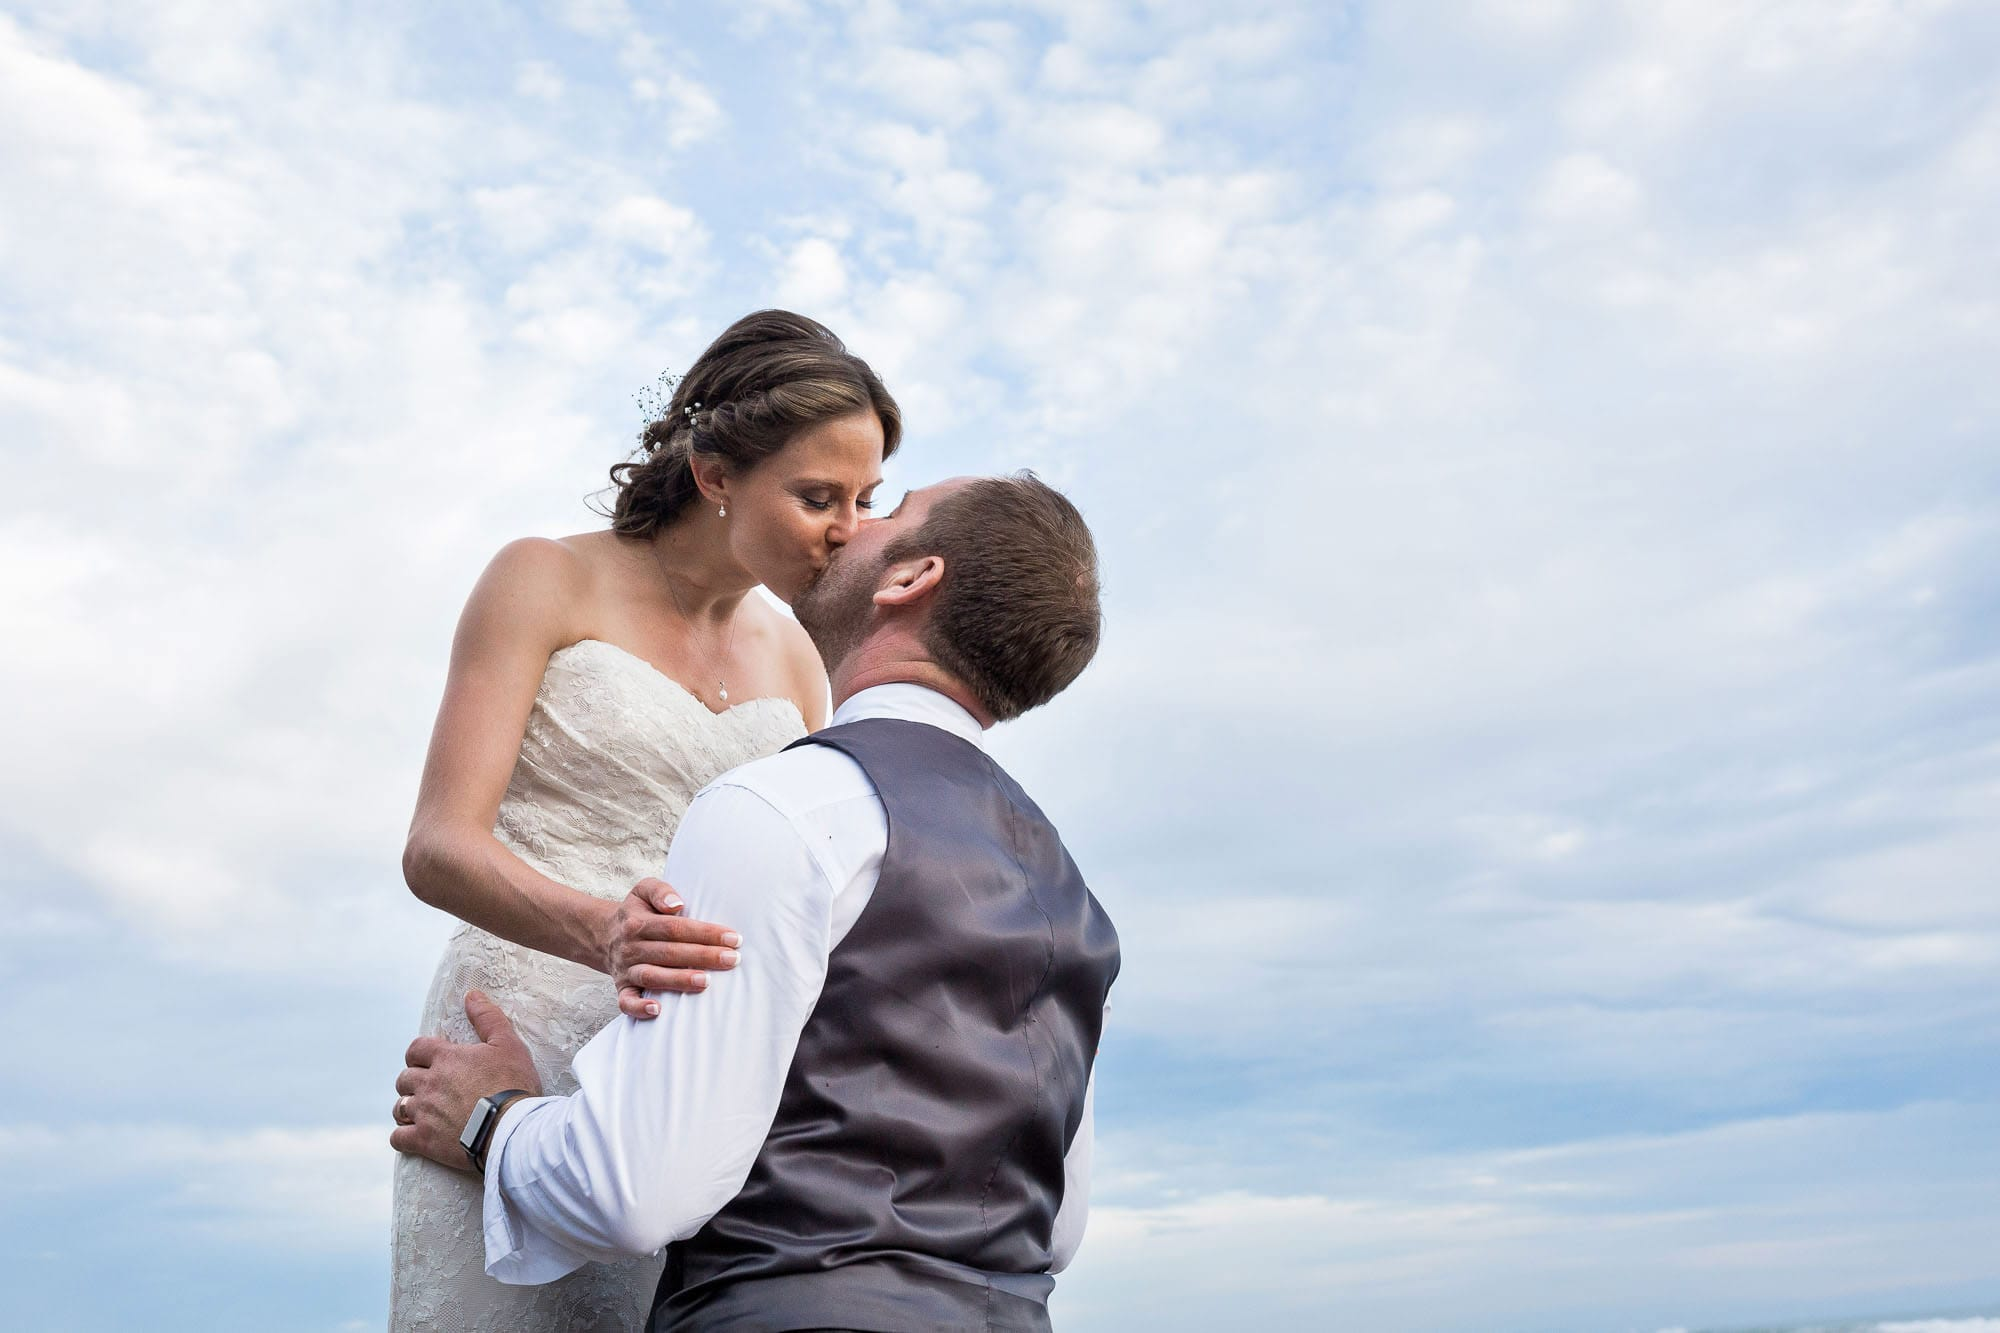 Even with a little rain on your wedding day there can be blue skies for the bridal portraits!